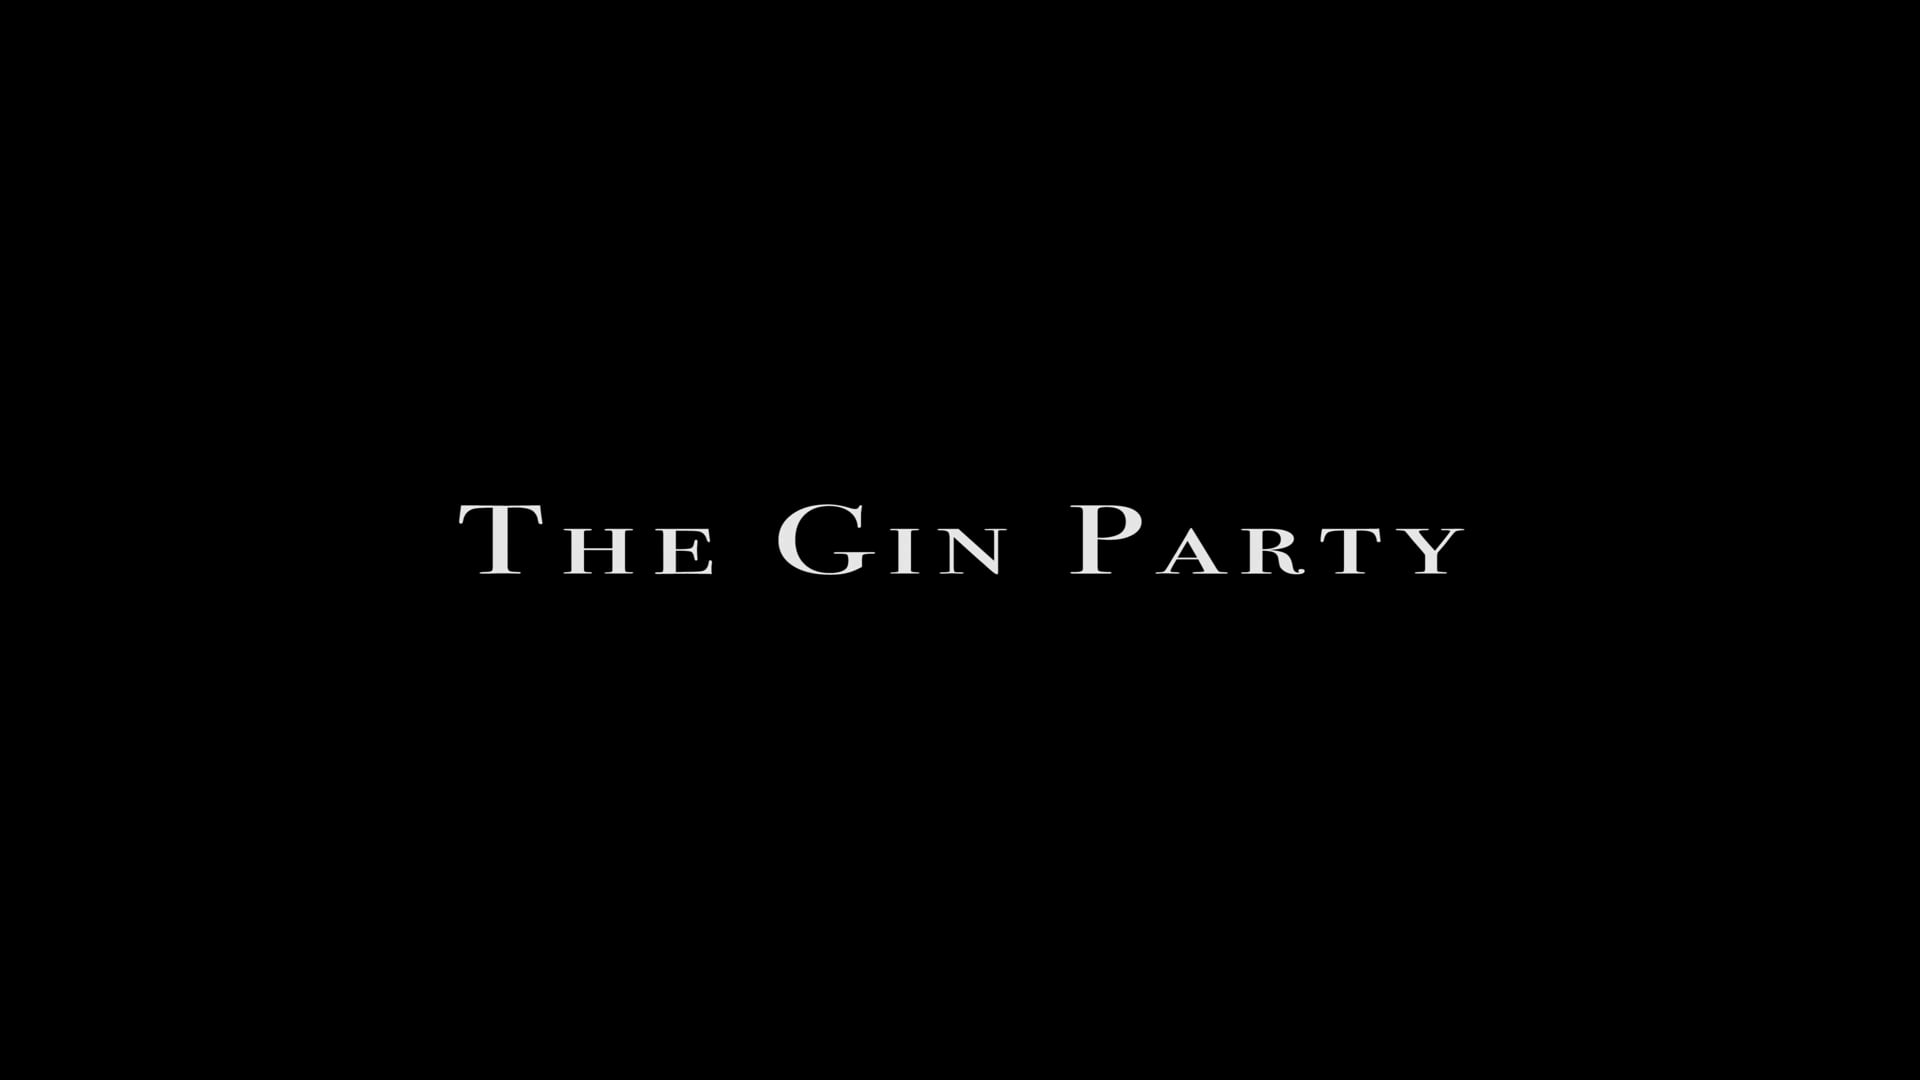 The Gin Party